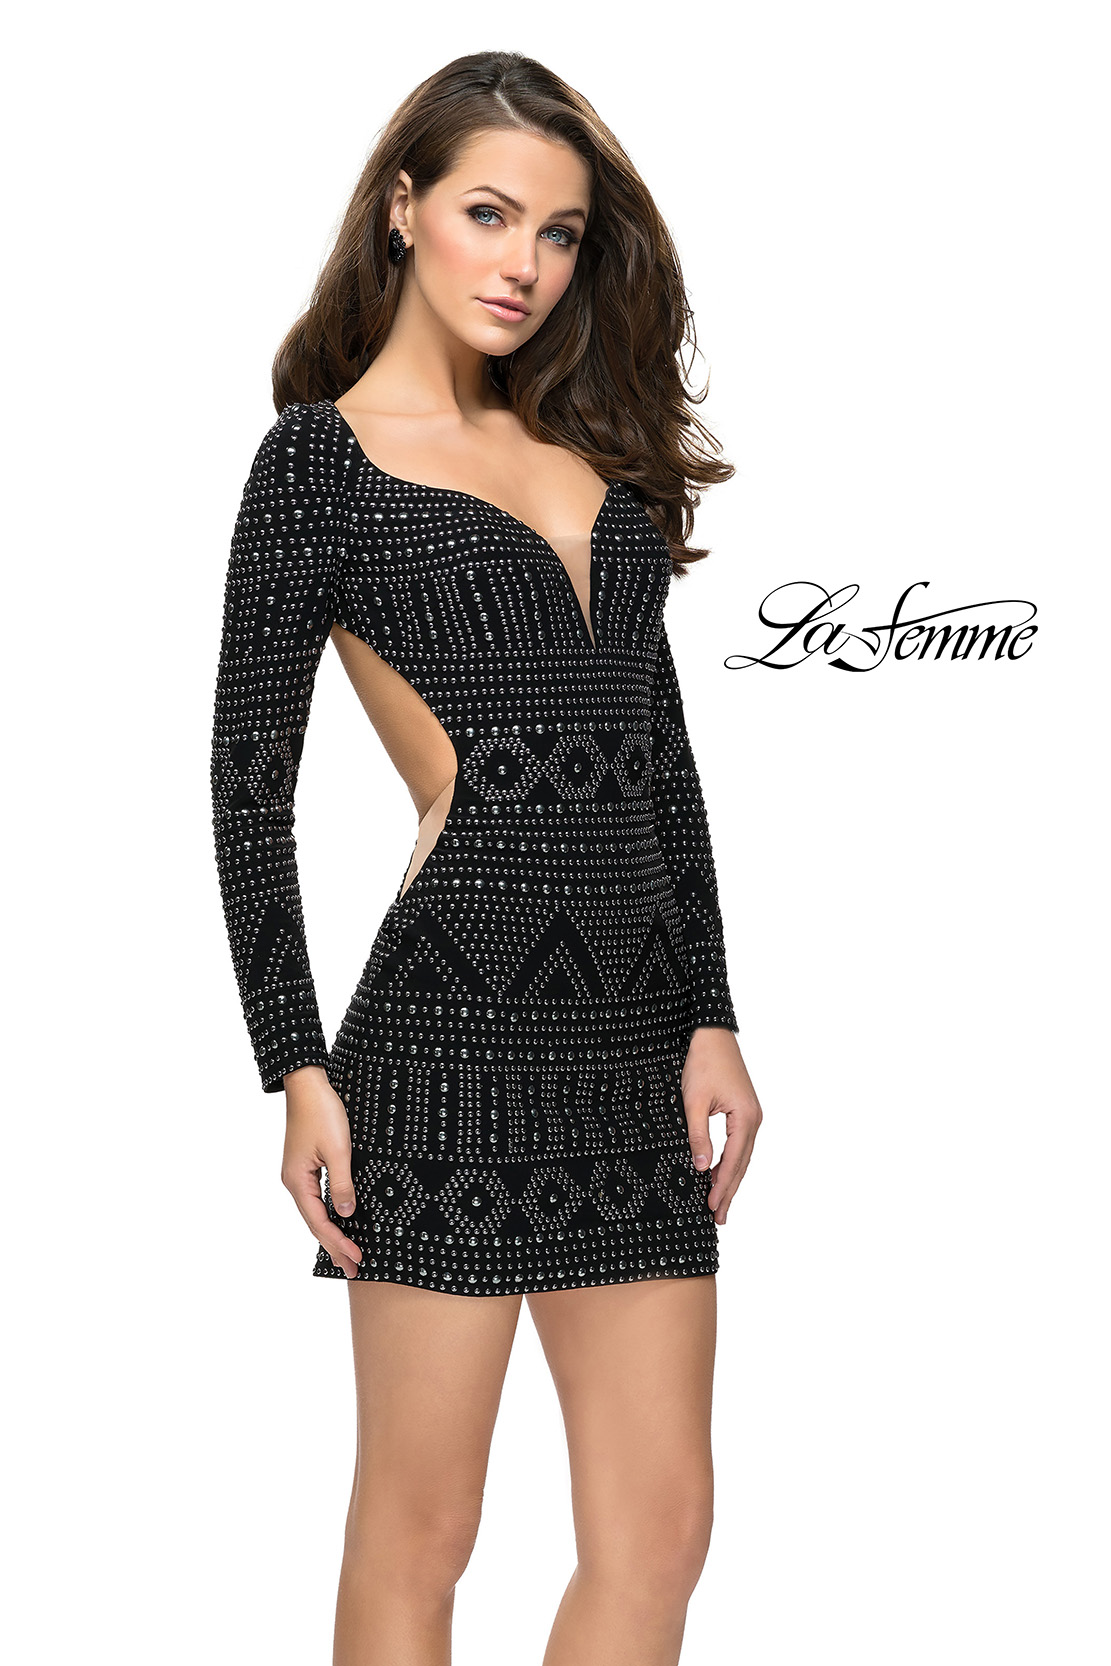 Long Sleeve Black Homecoming Dress with Stud Design